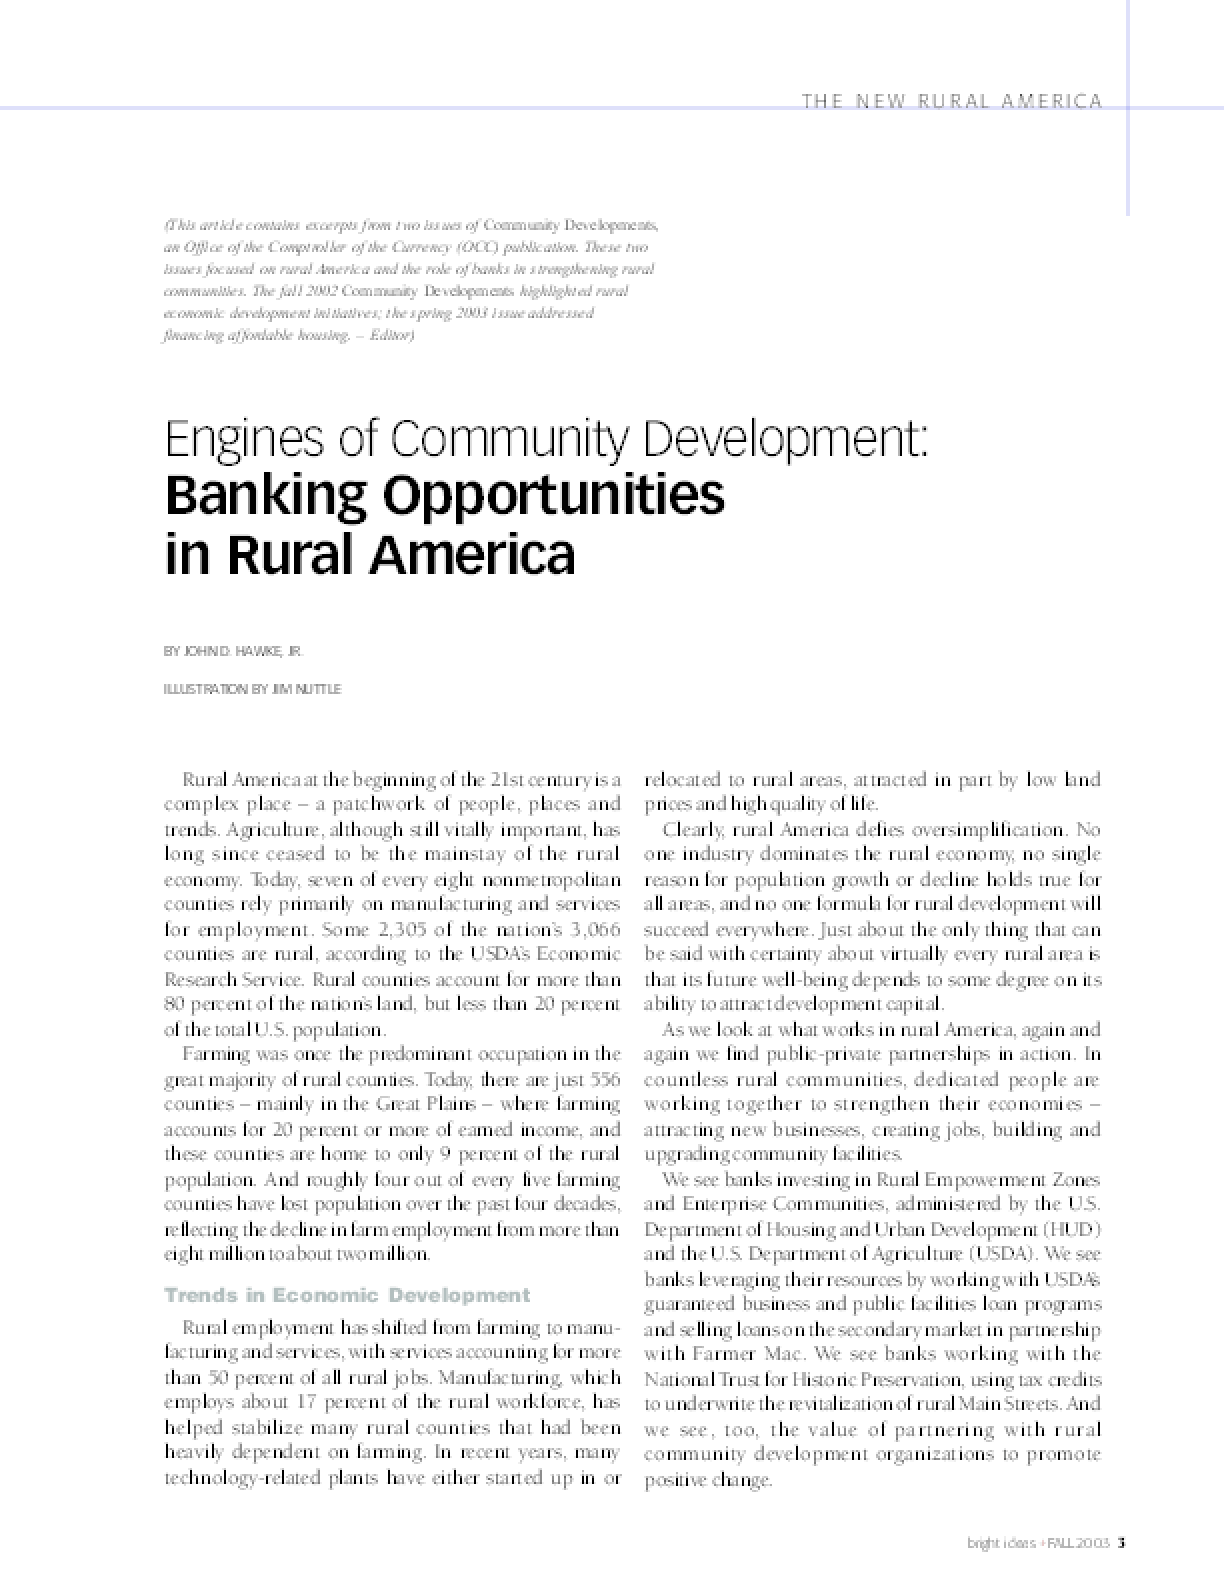 The New Rural America: Old Myths, New Realities